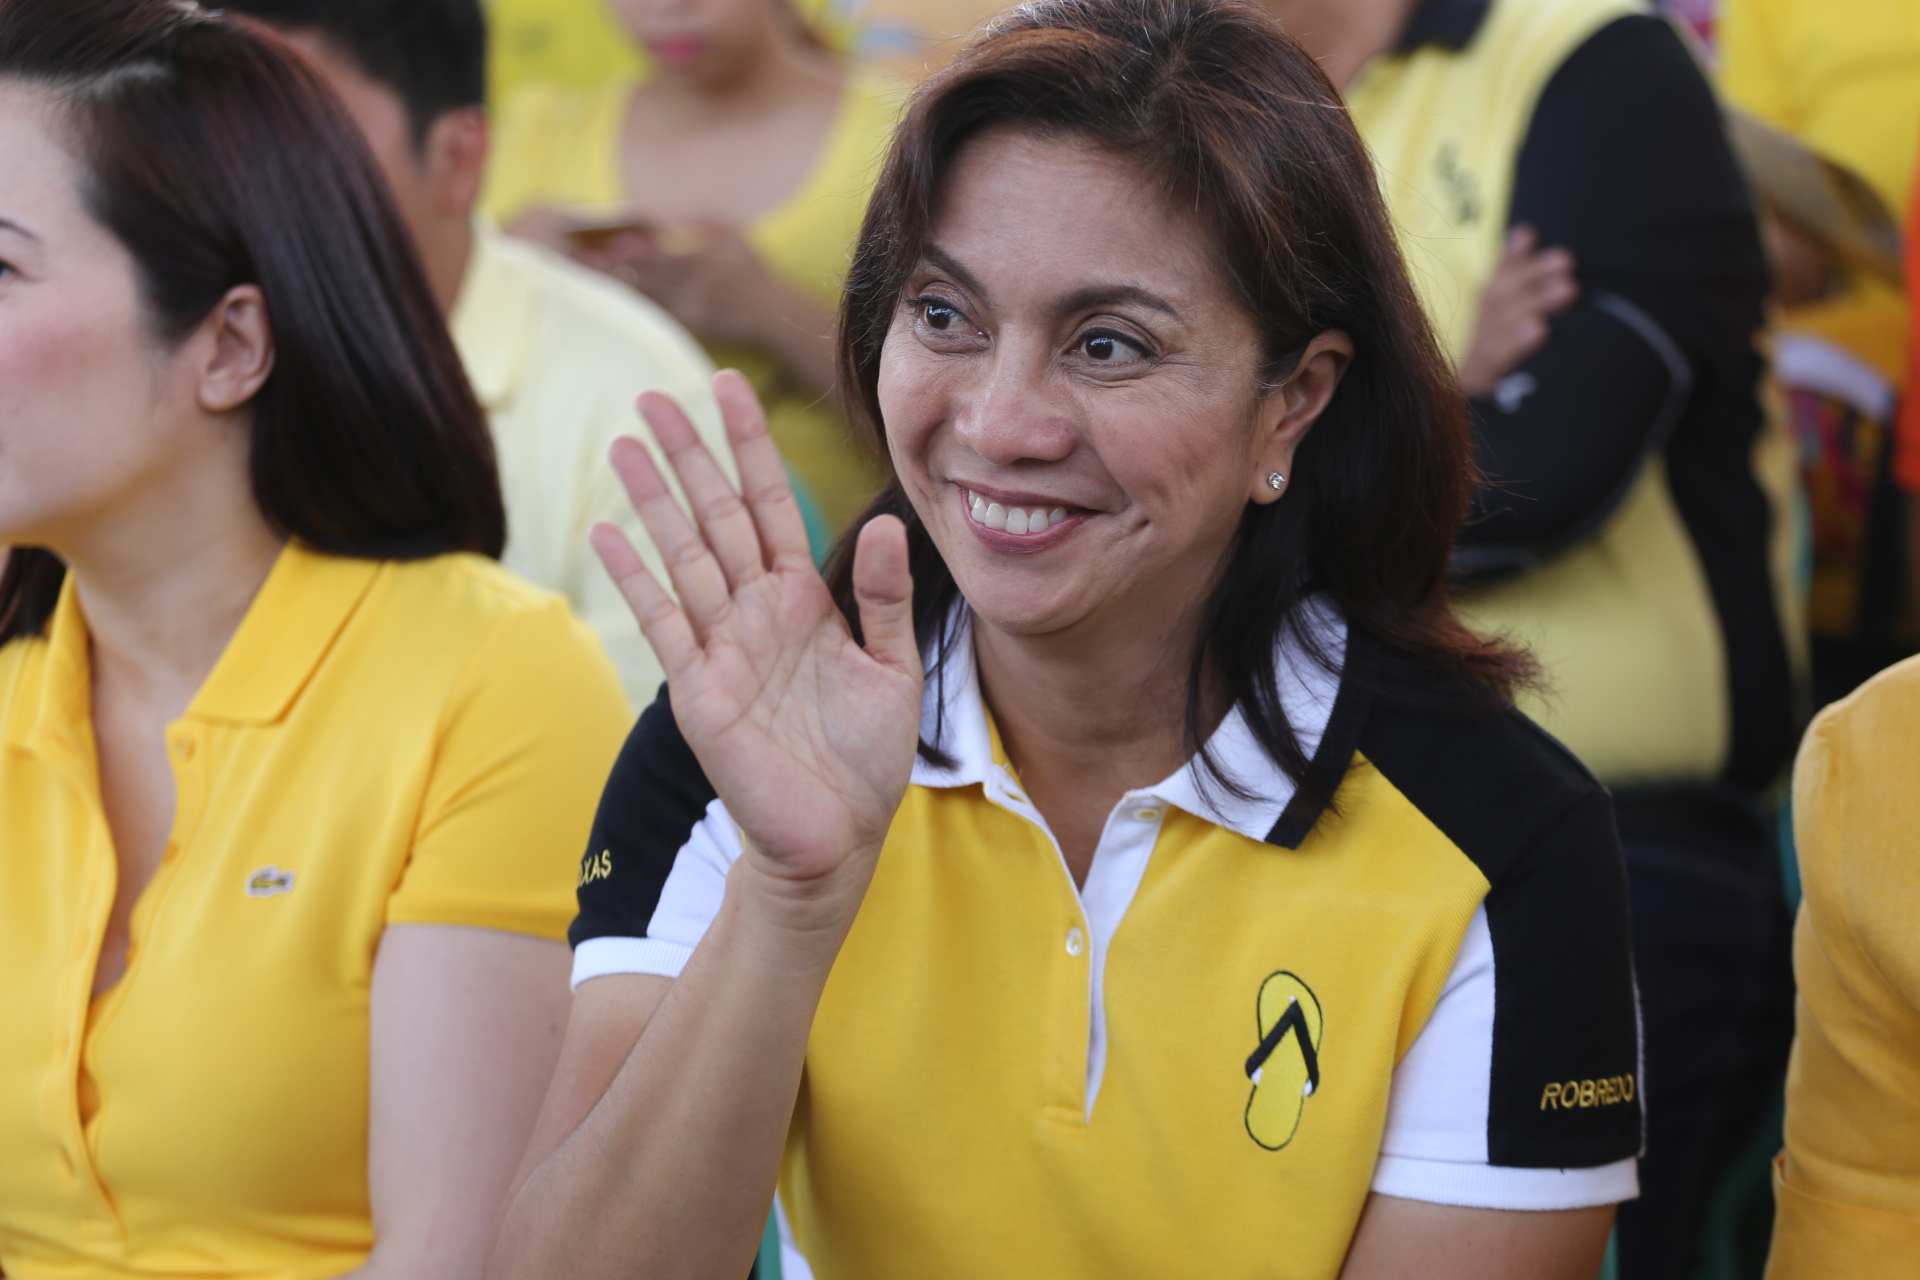 Sortie at the Civic Center, Brgy 178, Camarin, Caloocan starts with a mass celebrated by Fr. Manuel de Lima Seranilla of the Archdiocese of Manila as VP candidate, Leni Robredo celebrates her 51st birthday. All 3 of Robredo's daughters, Paolo Roxas, Judy Araneta-Roxas, and Kris Aquino were in attendance. Photo by Manman Dejeto/Rappler